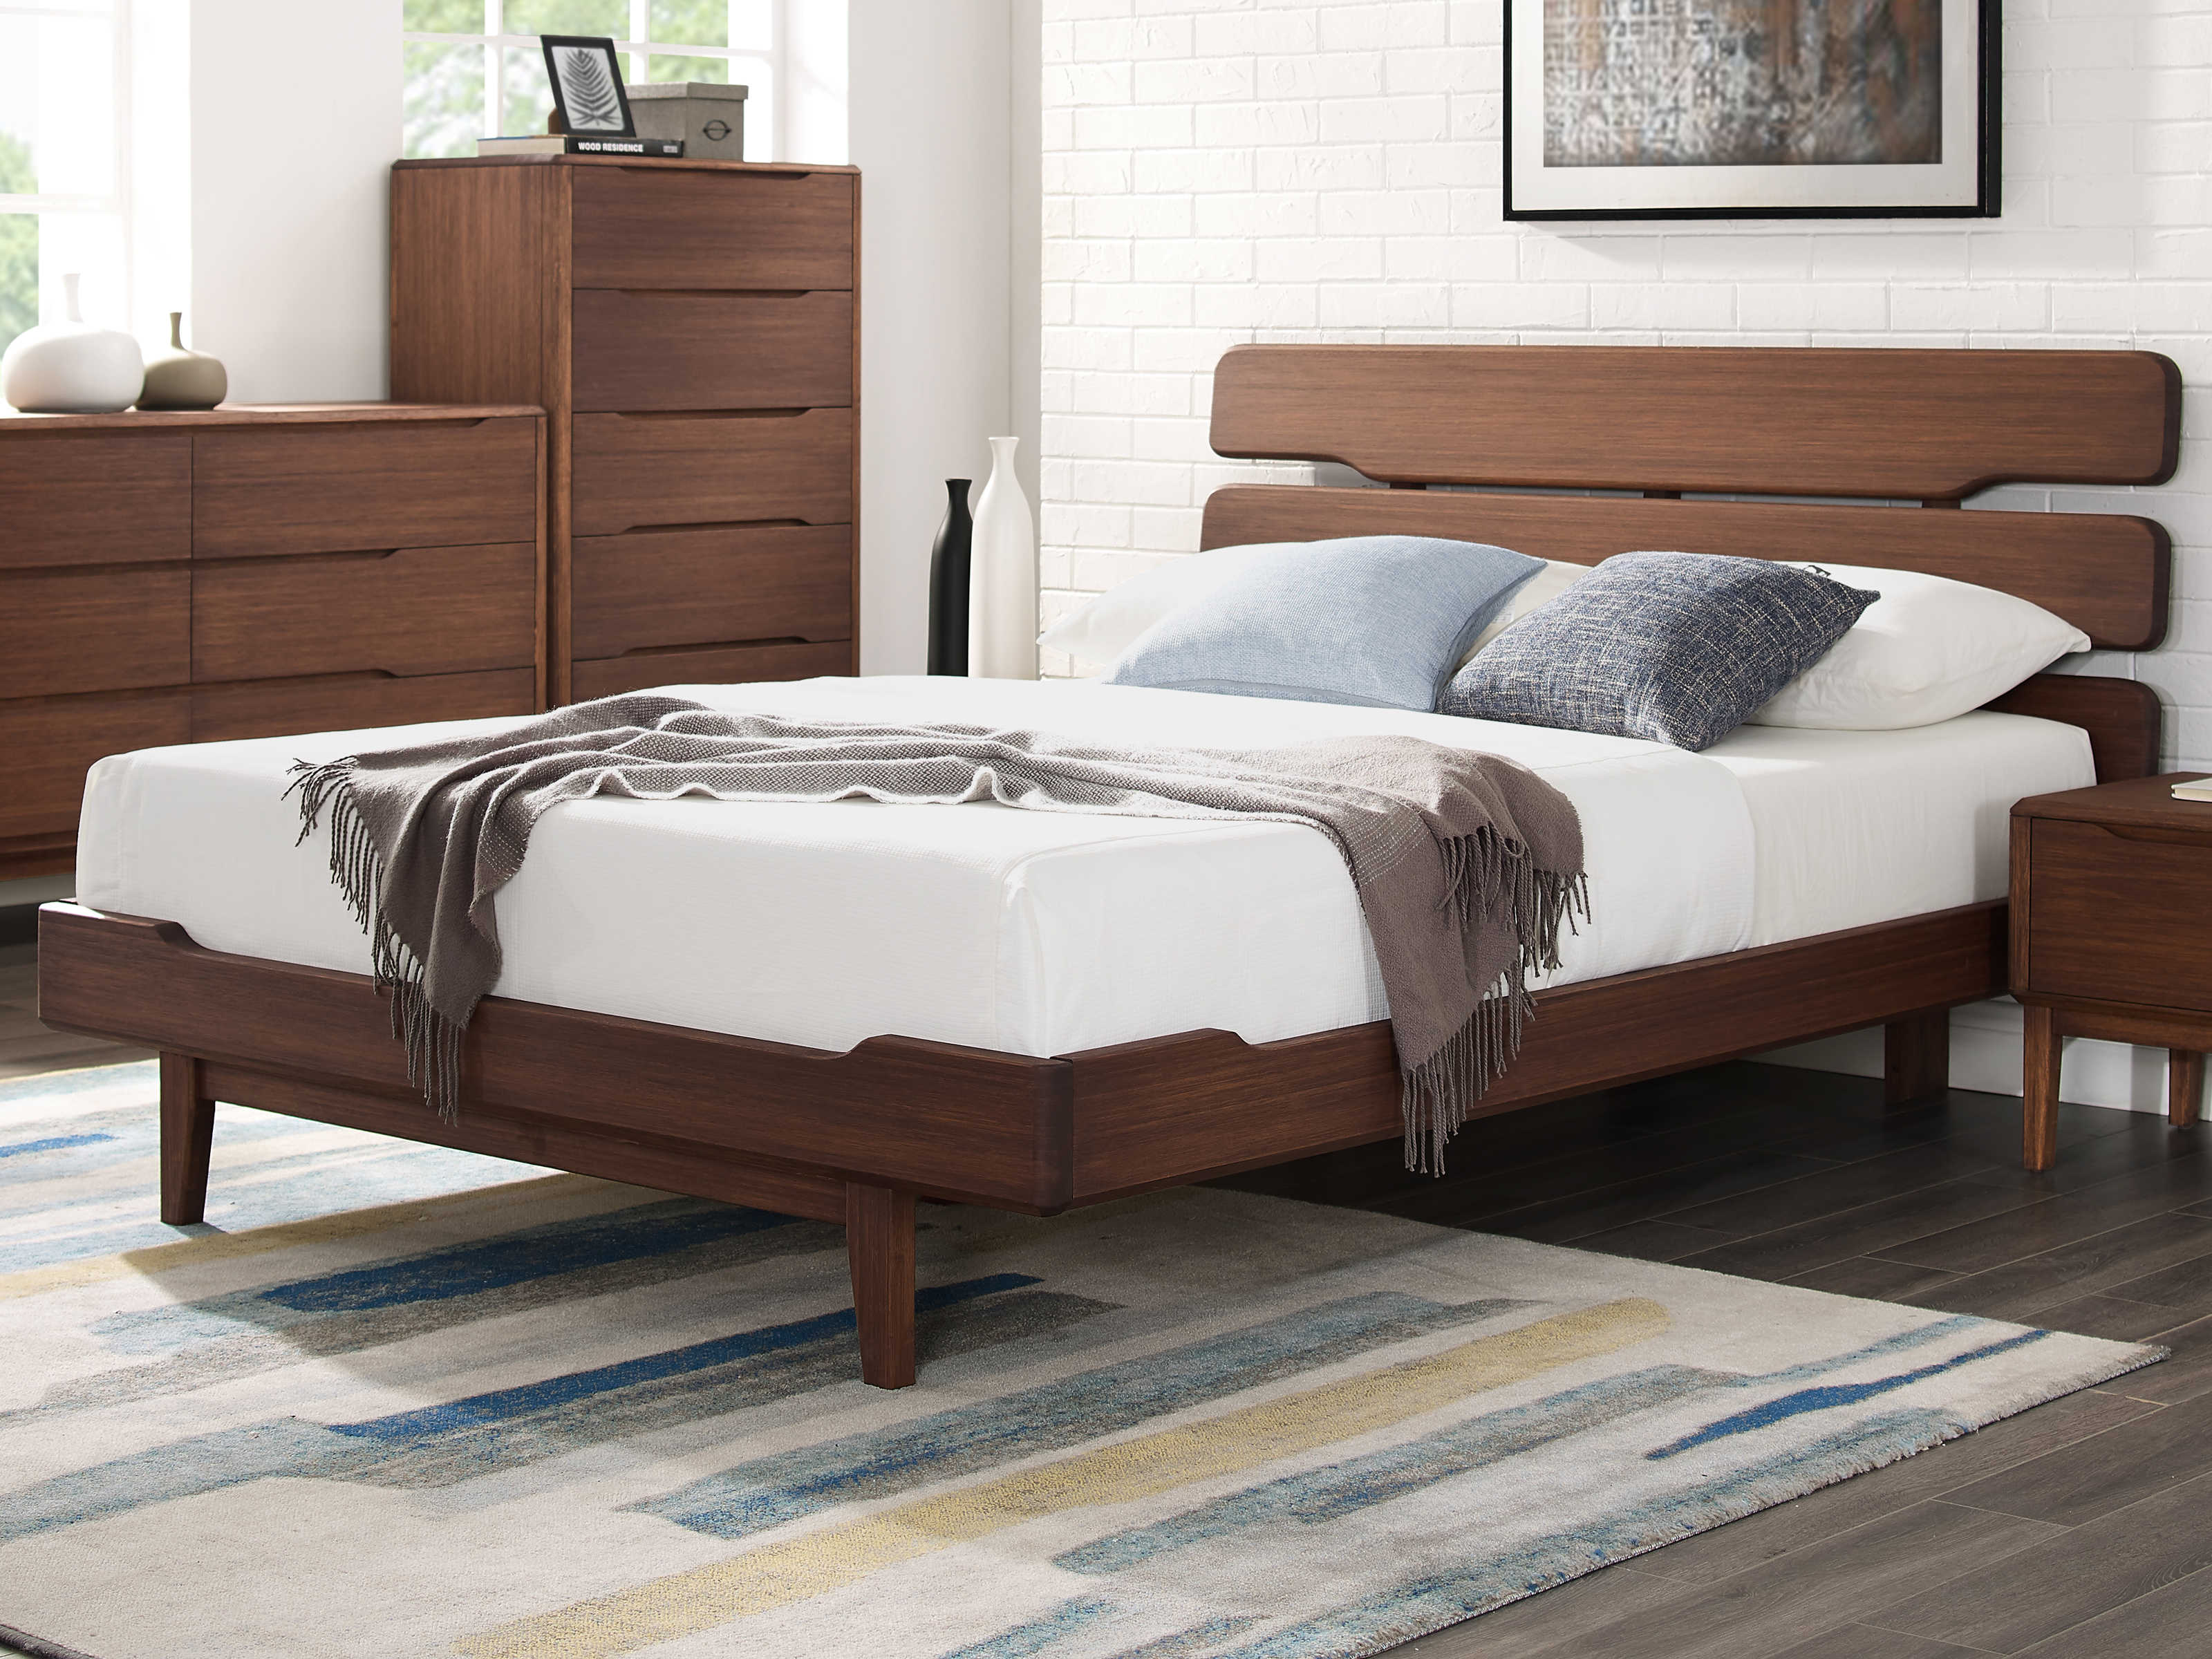 Picture of: Greenington Currant Oiled Walnut Queen Platform Bed Gtg0026ow